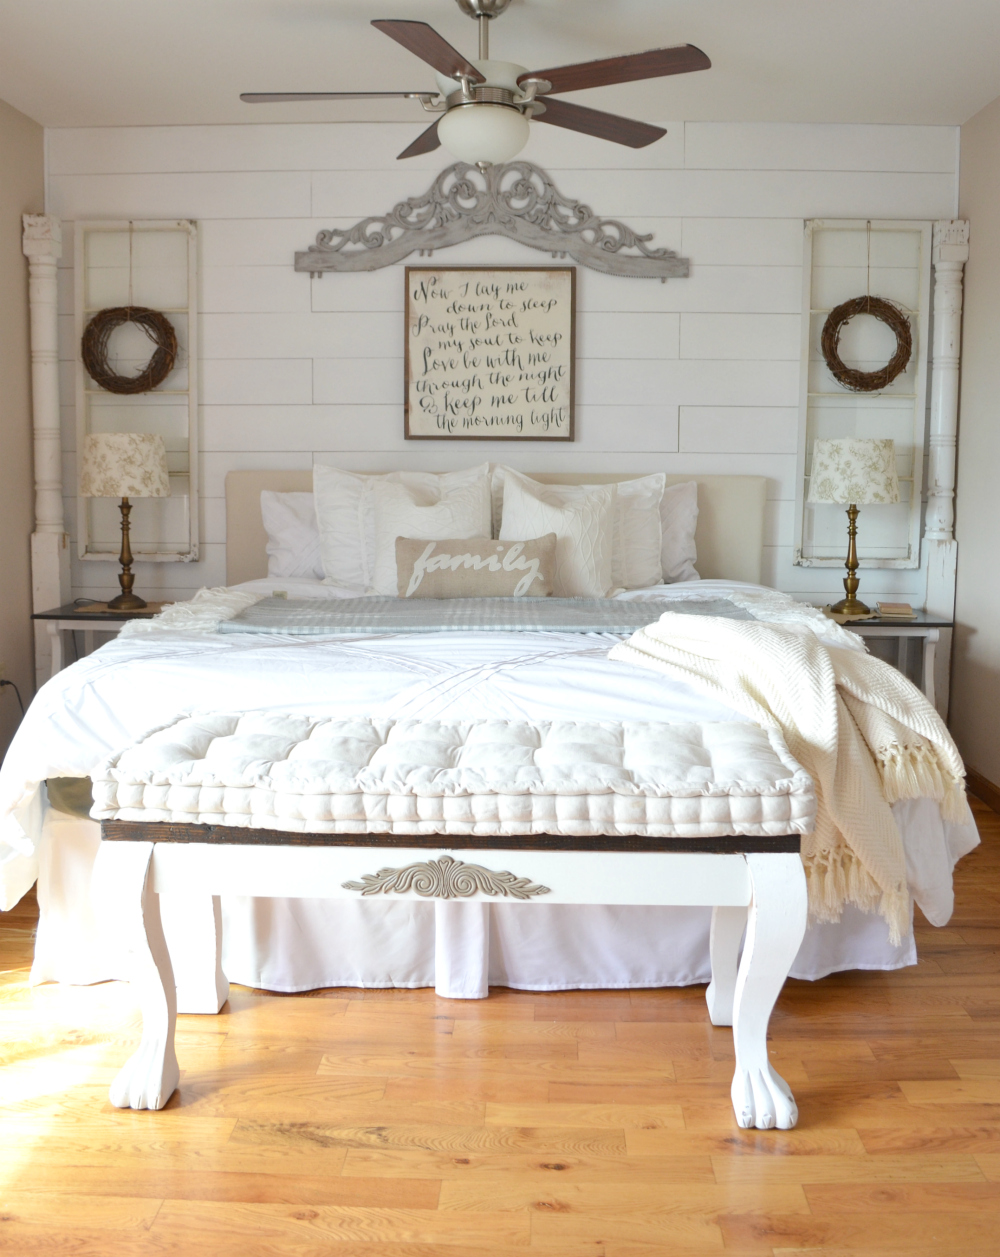 pictures bed beds vintage wrought frame headboard with iron inspirations headboards for queen